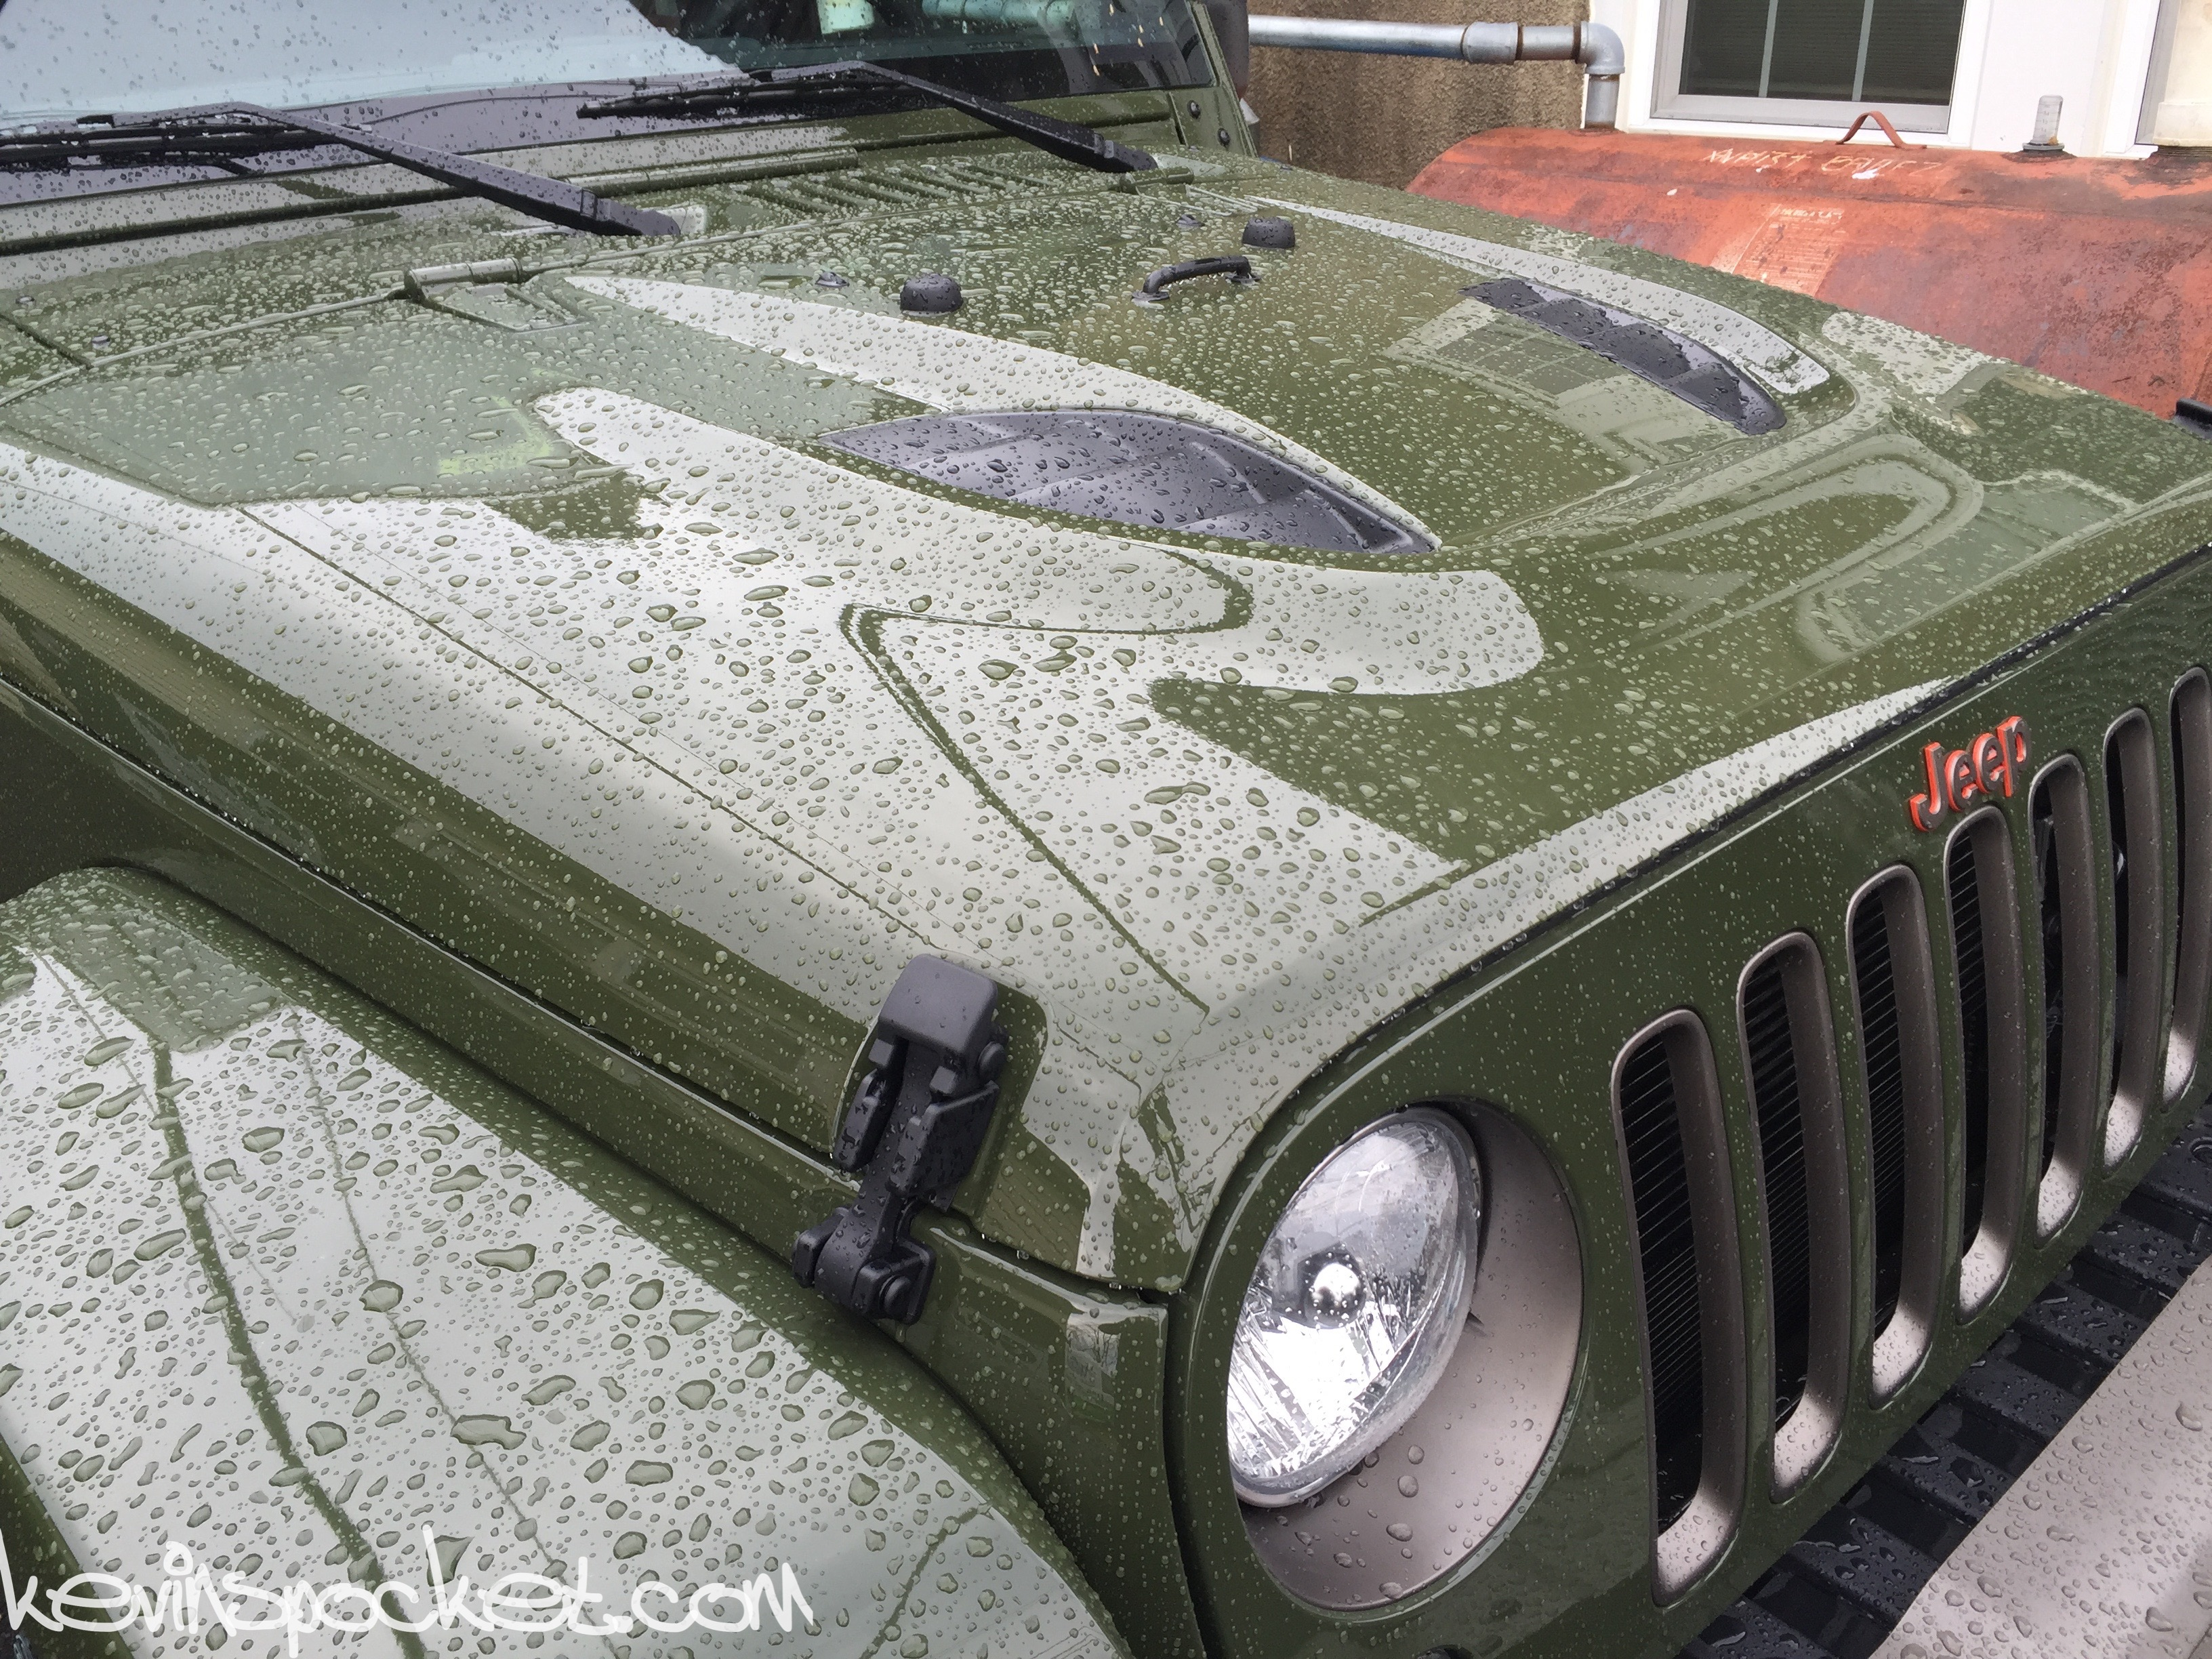 wrangler jeep review chickdriven car com anniversary portfolio